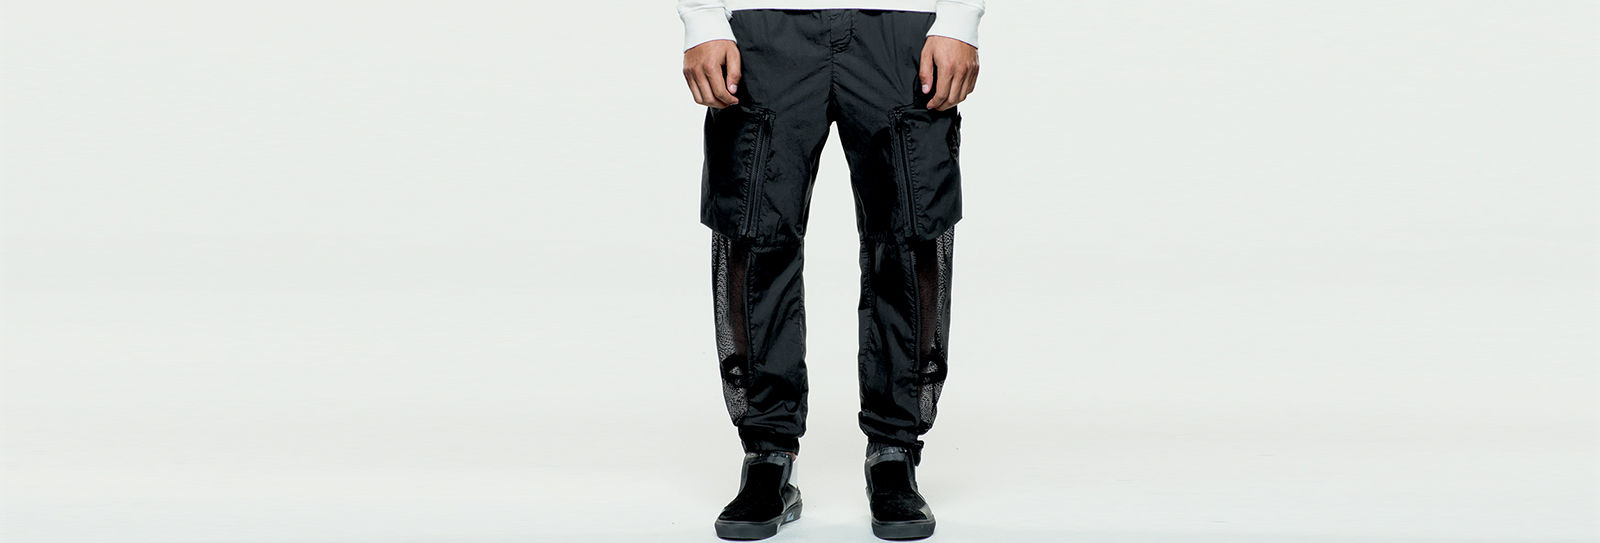 Model wearing black cargo pants with one large zippered pocket on each thigh and black slip on shoes.